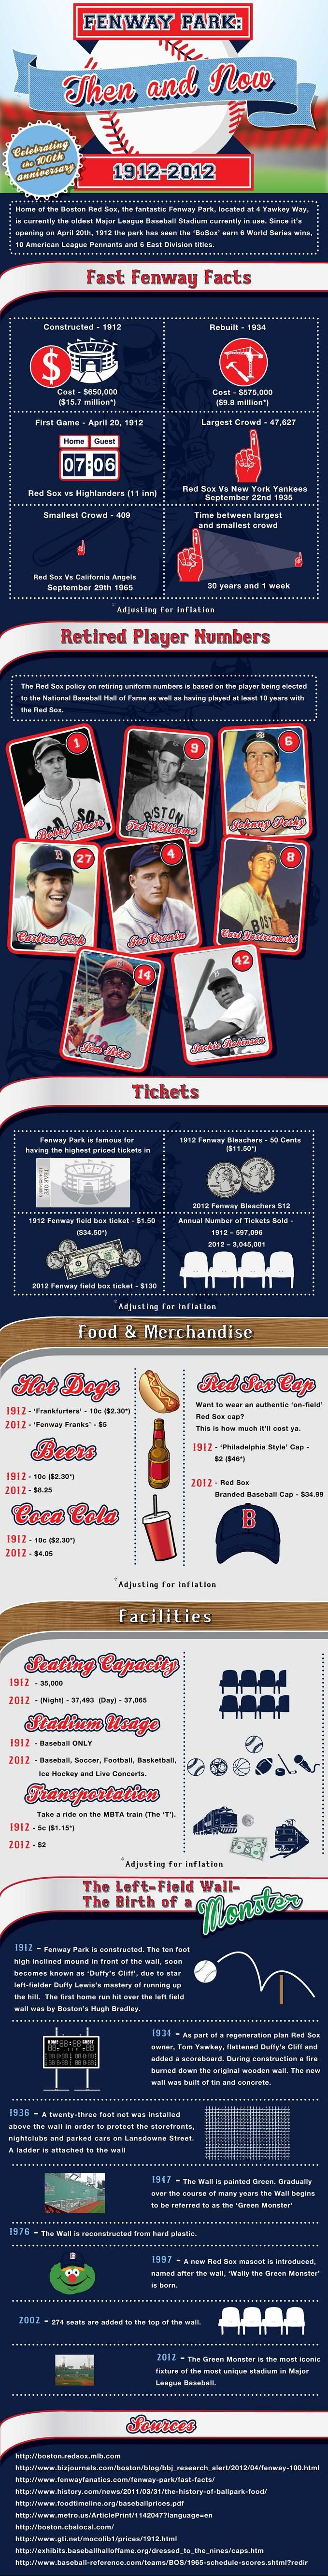 The Red Sox May BLOW, But The History Of Fenway Park Is Still MAD COOL (INFOGRAPHIC)